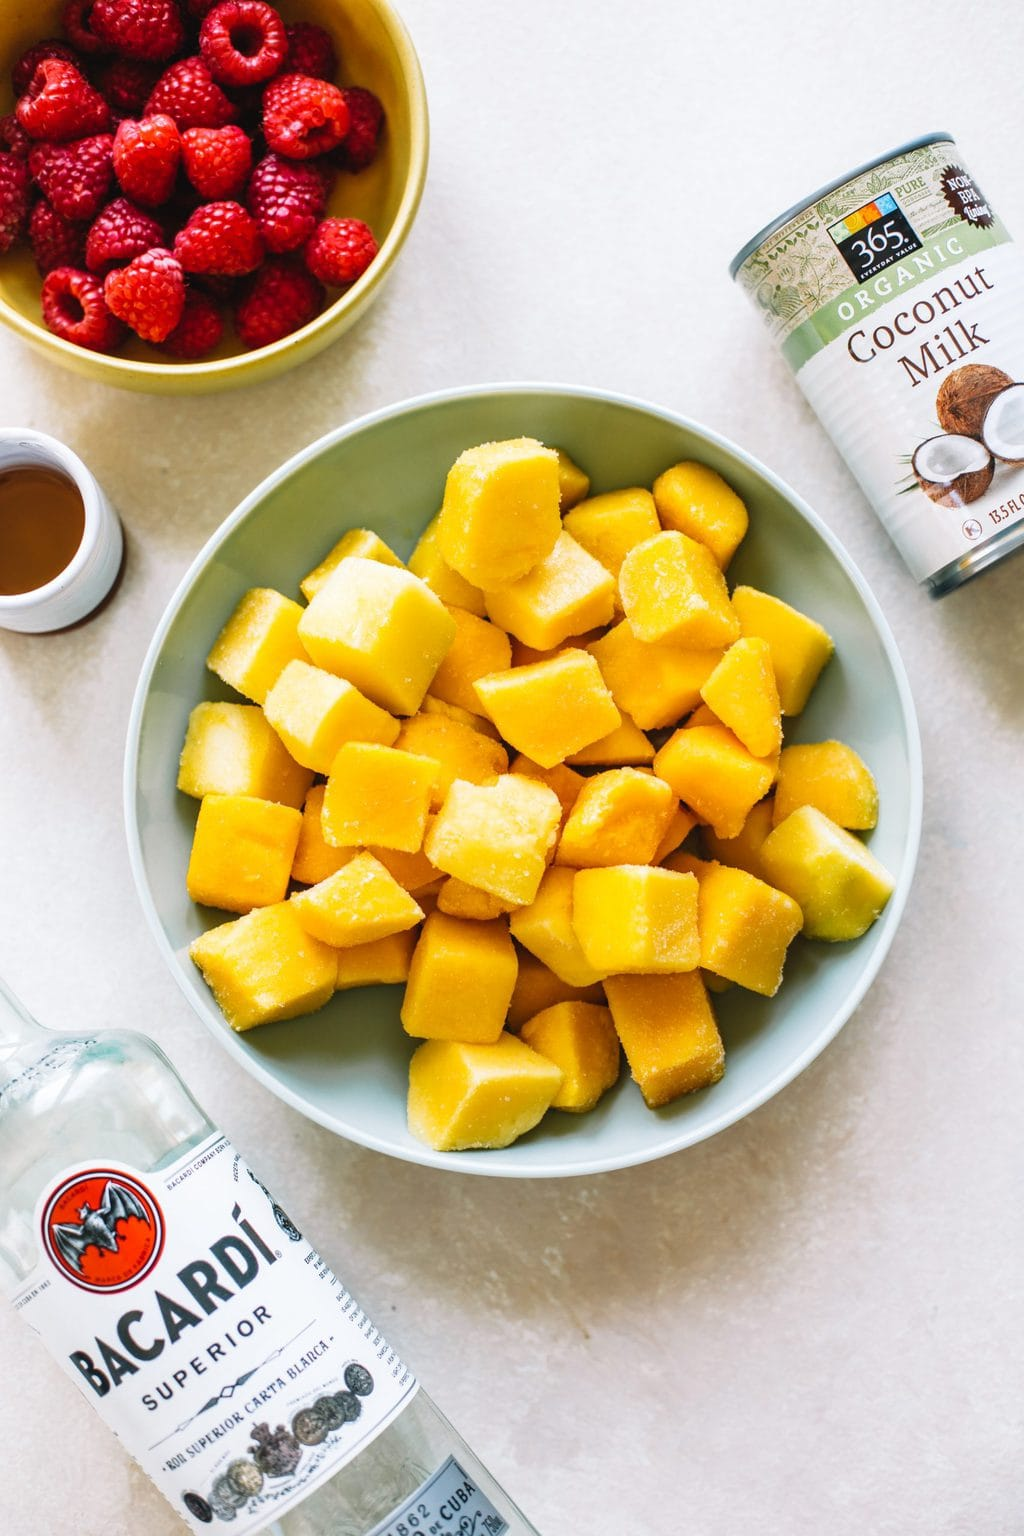 Bowls of ingredients for mango ice cream.